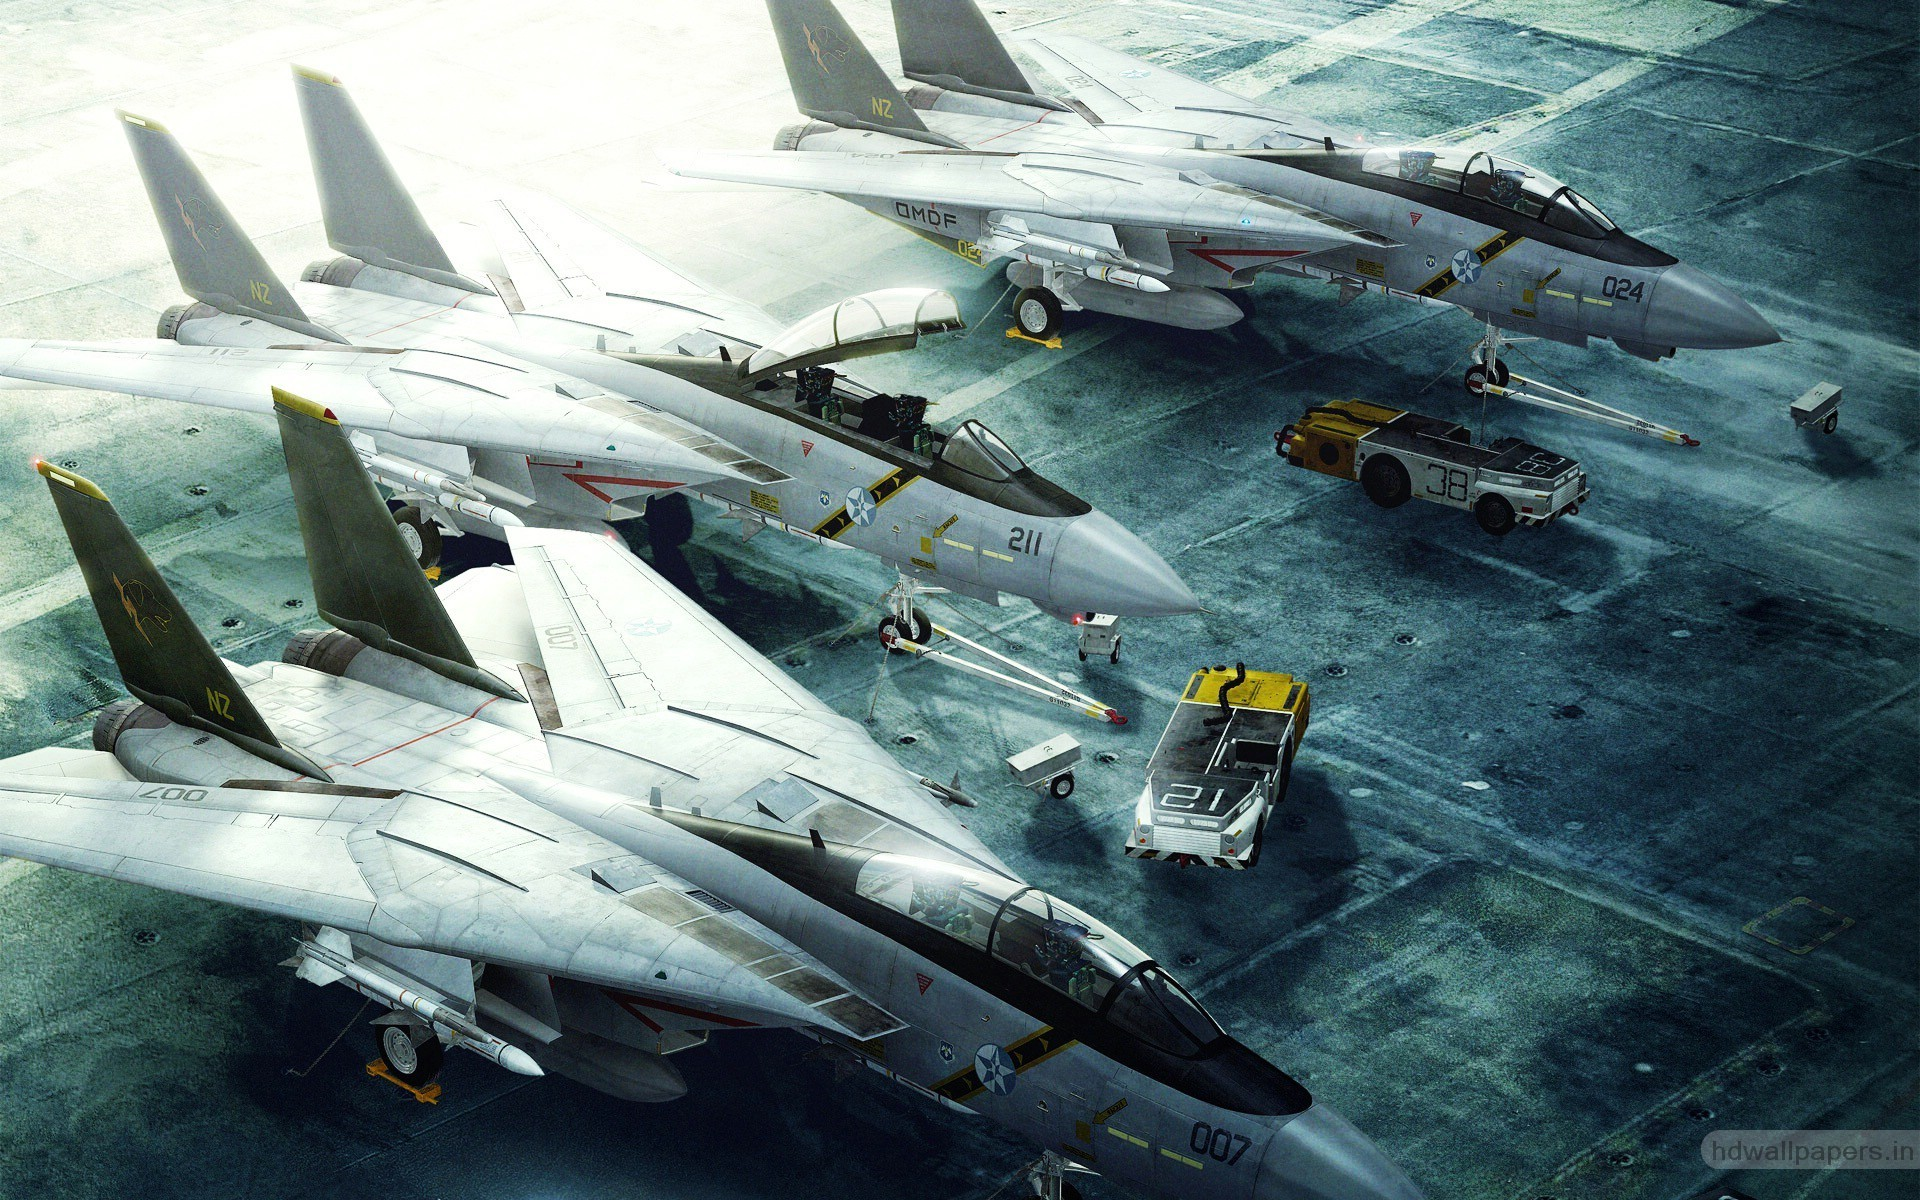 1920x1200 Grumman F 14 Tomcat Wallpapers HD Wallpapers